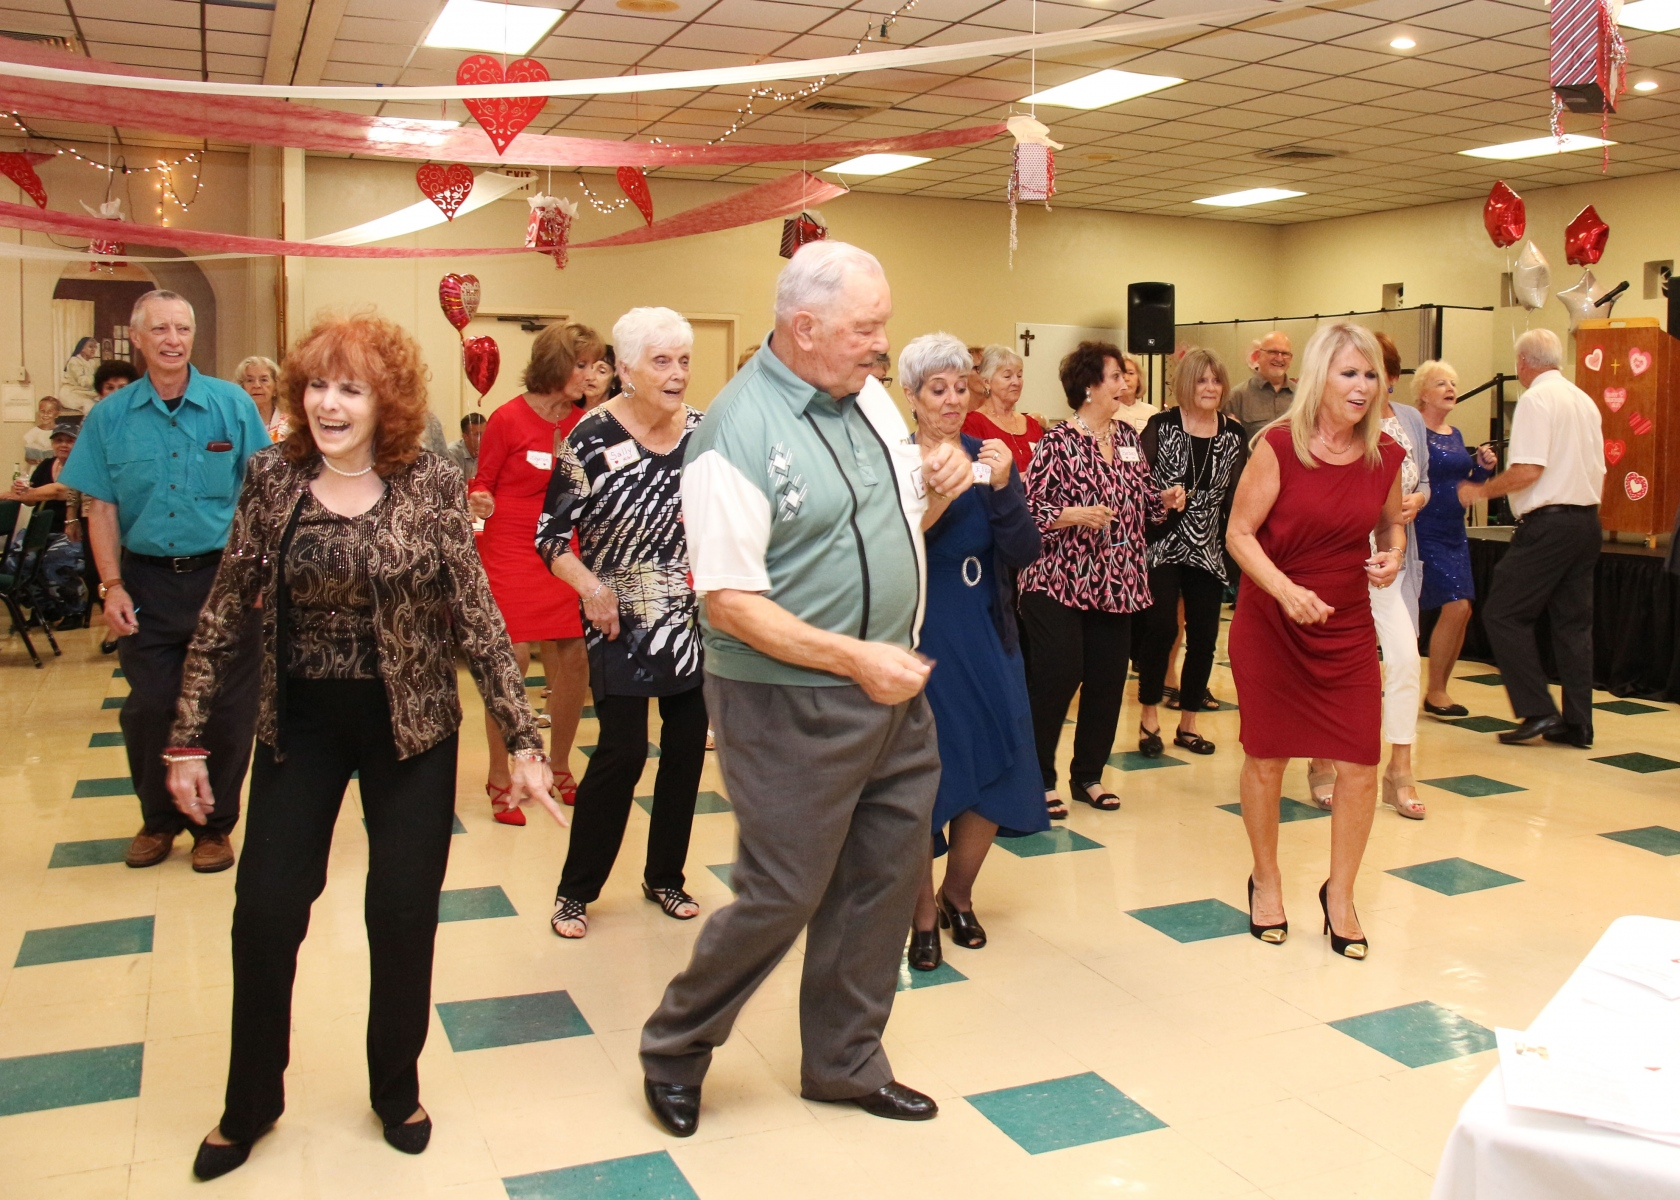 Dancing-is-always-popular-at-St.-Benedicts-Valentine-Gala